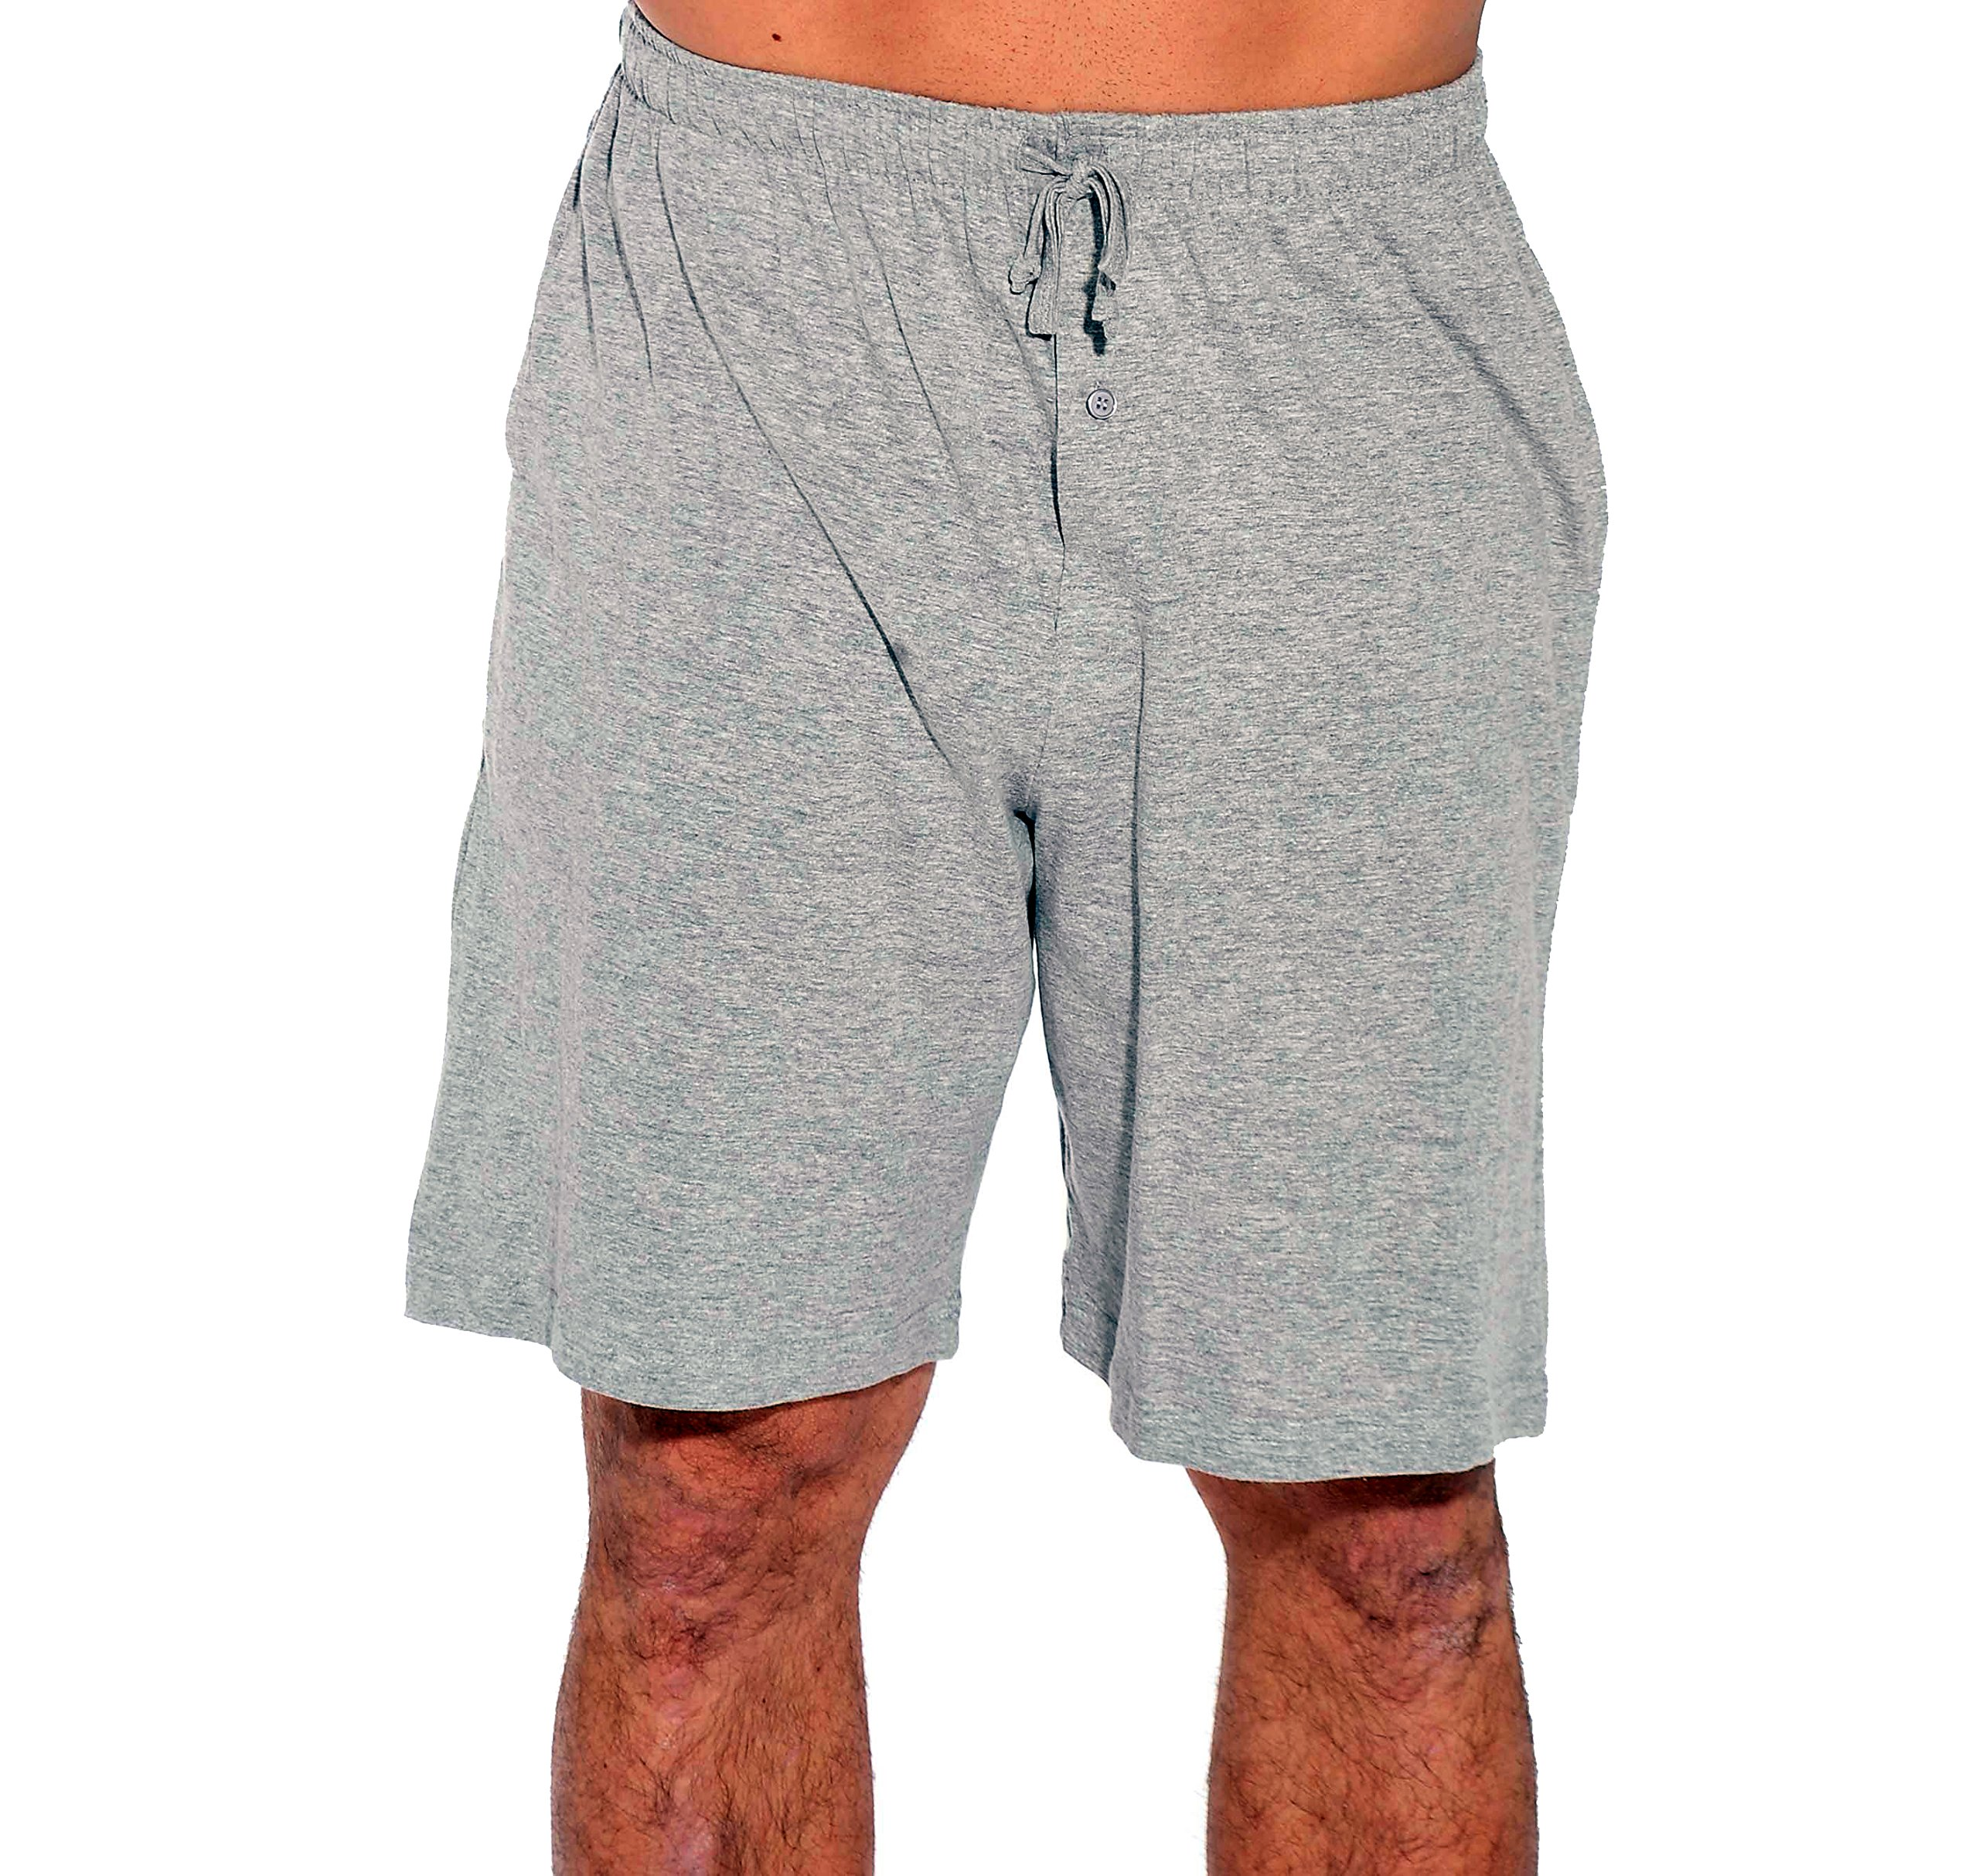 At The Buzzer 14501-Grey-M Men's Pajama Shorts/Sleepwear/PJS